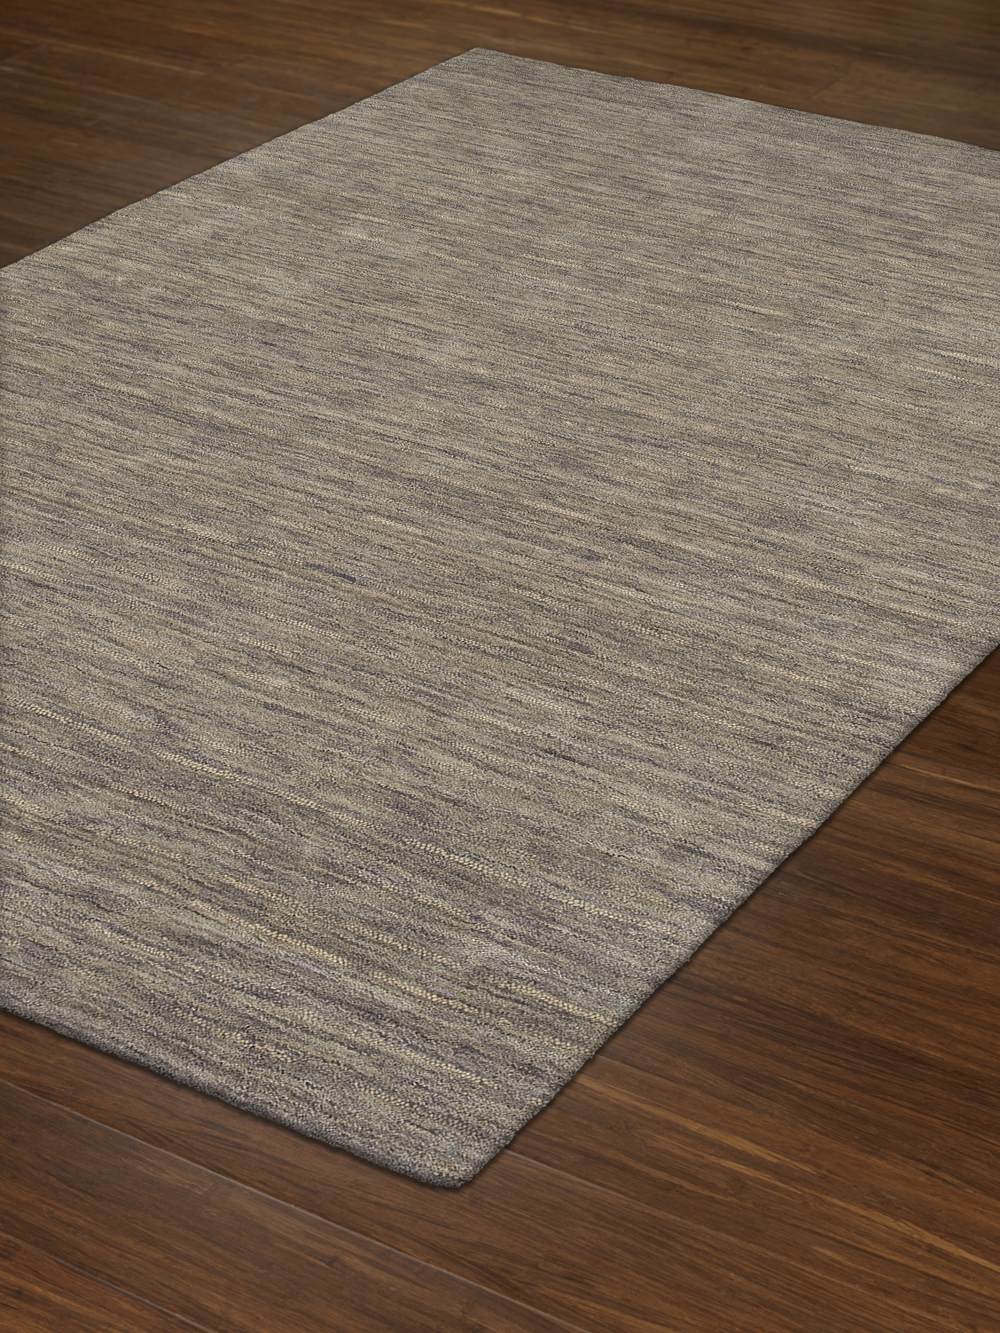 Rafia Granite Dyed Wool Pile Rug Textured Plush